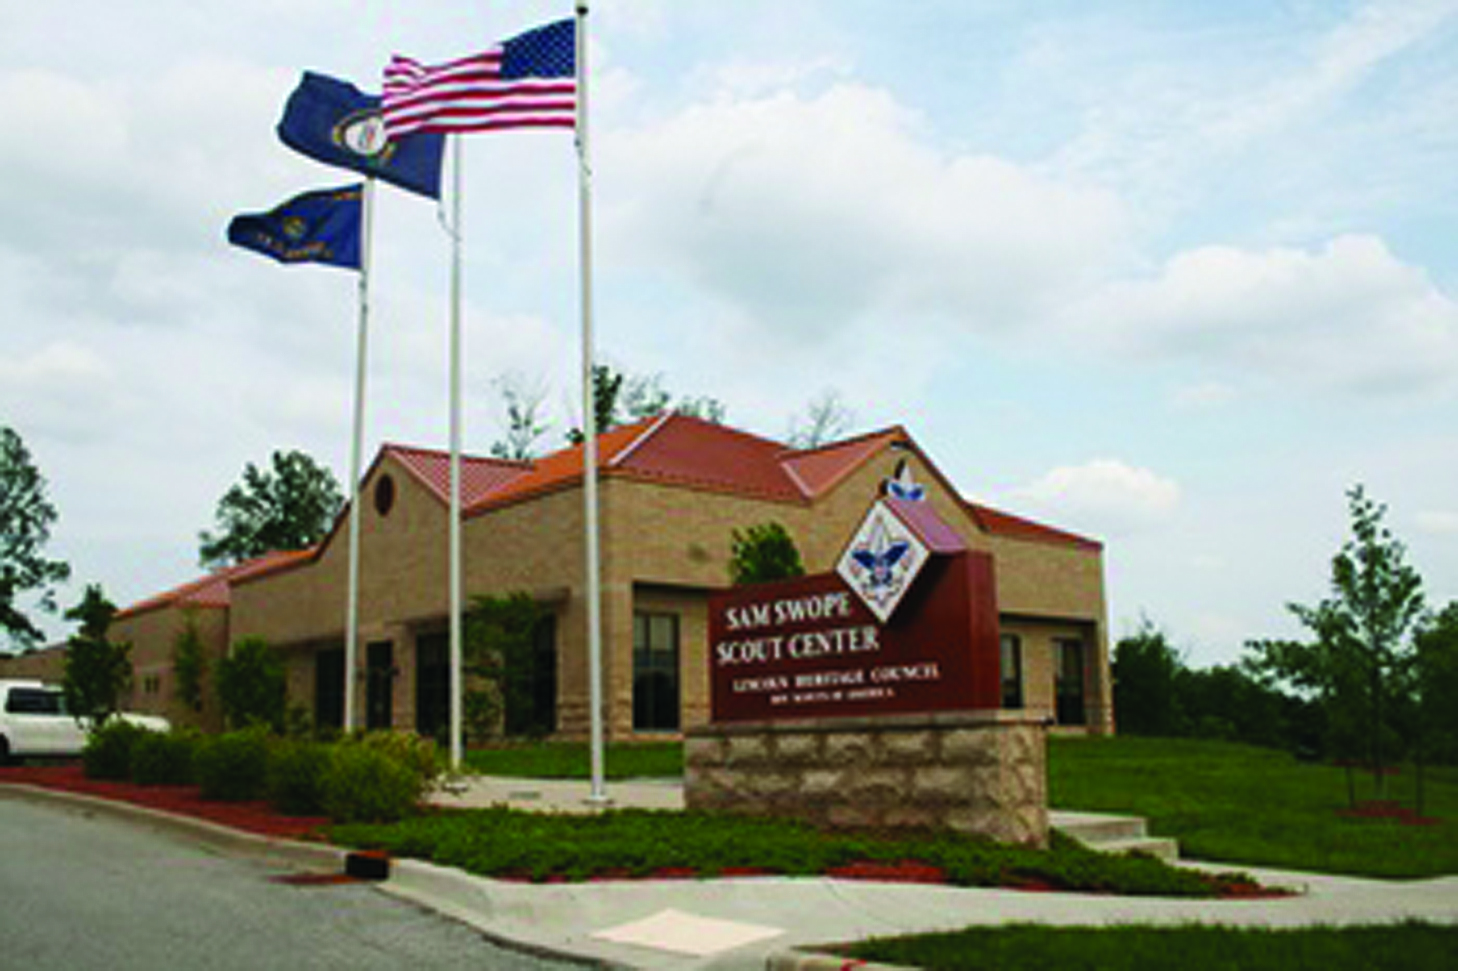 Sam Swope Scout Center image